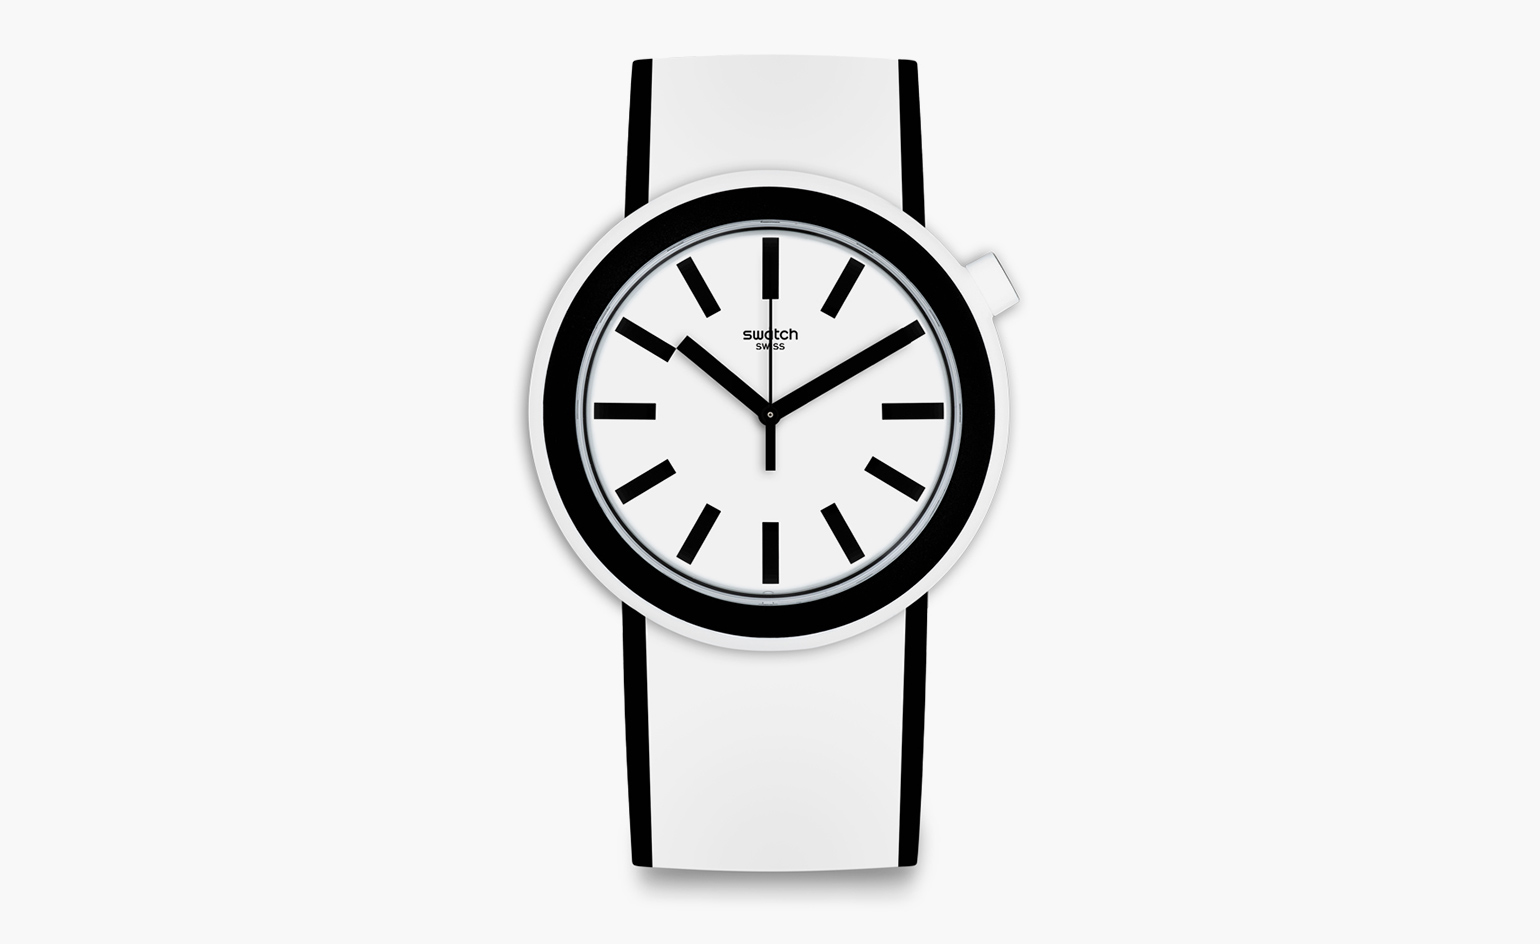 The return of the POP Swatch watch